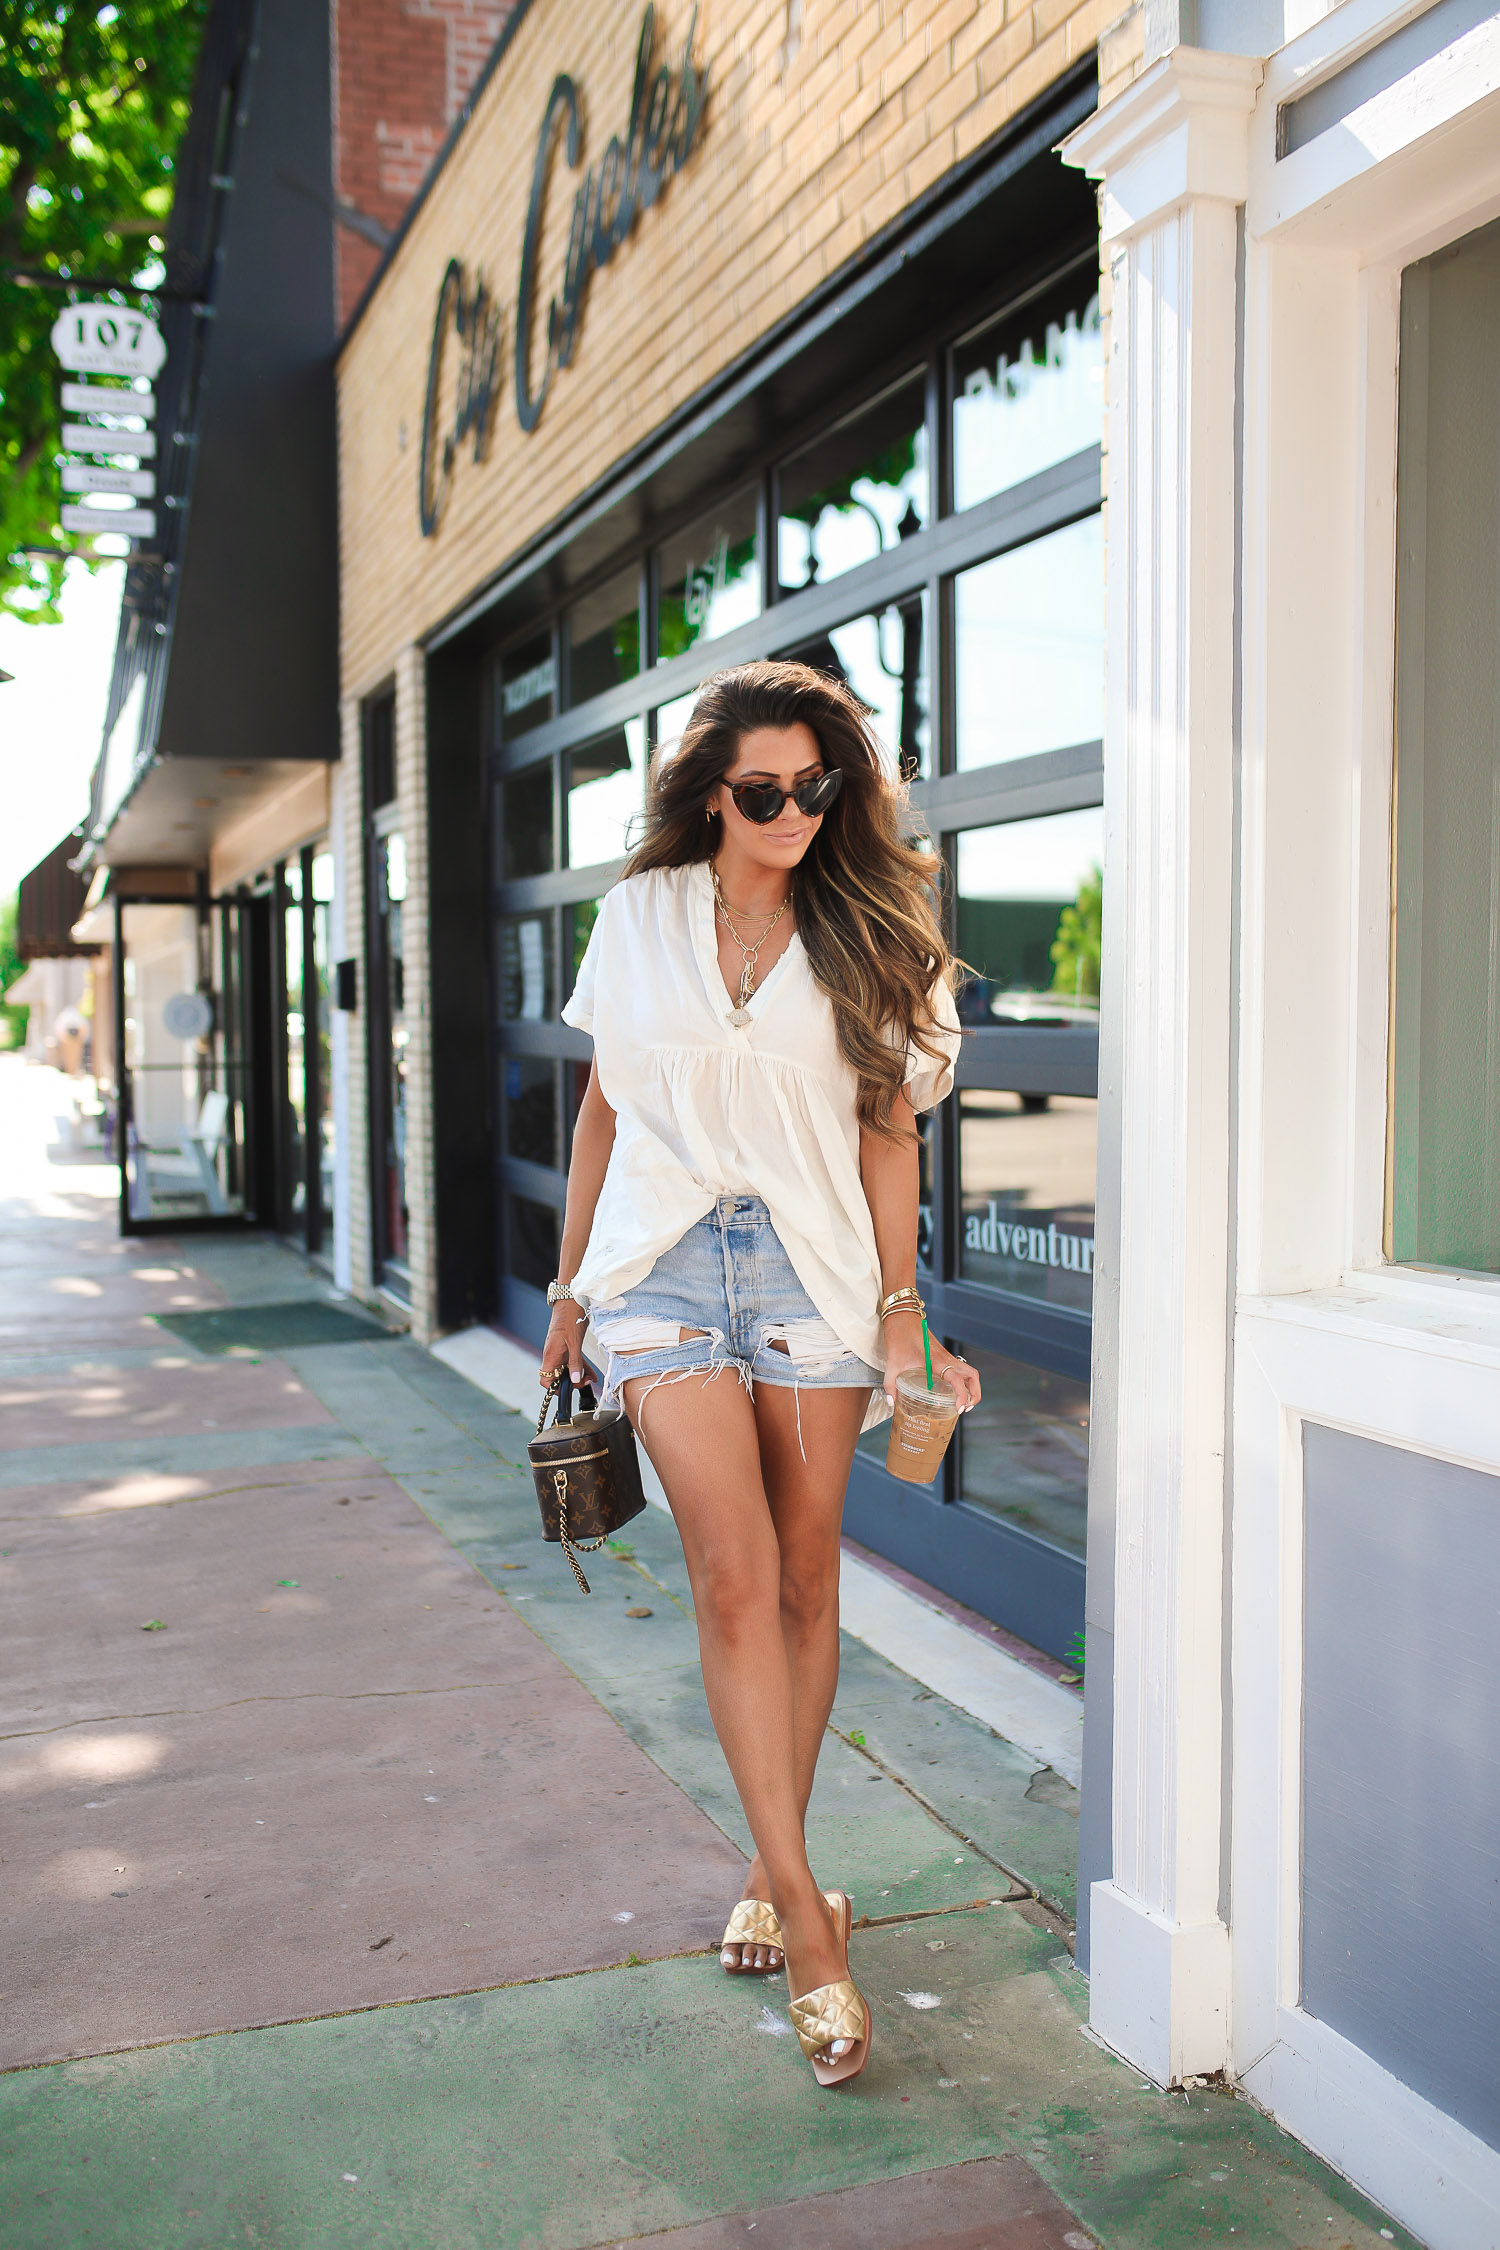 summer fashion pinterest 2020, emily gemma, bottaga venetta sandal dupes, Free people oversized white tunic, Levis 501 shorts review, YSL heart sunglasses-11 | Free People Tunic Top by popular US fashion blog, The Sweetest Thing: image of Emily Gemma walking outside and wearing a Nordstrom Getaway with Me Tunic Top, Nordstrom 501® Original Cutoff Denim Shorts LEVI'S®, Nordstrom Reta Slide Sandal MARC FISHER LTD, Nordstrom Loulou 54mm Heart Sunglasses SAINT LAURENT, Nordstrom Pavé Huggie Hoop Earrings NORDSTROM, Rolex watch, Cartier bracelets, Nordstrom Lip Cheat Lip Liner CHARLOTTE TILBURY, Nordstrom Hot Lips Lipstick CHARLOTTE TILBURY, and Nordstrom Gloss Luxe Moisturizing Lipgloss TOM FORD while holding a Starbuck's drink and Louis Vuitton purse.